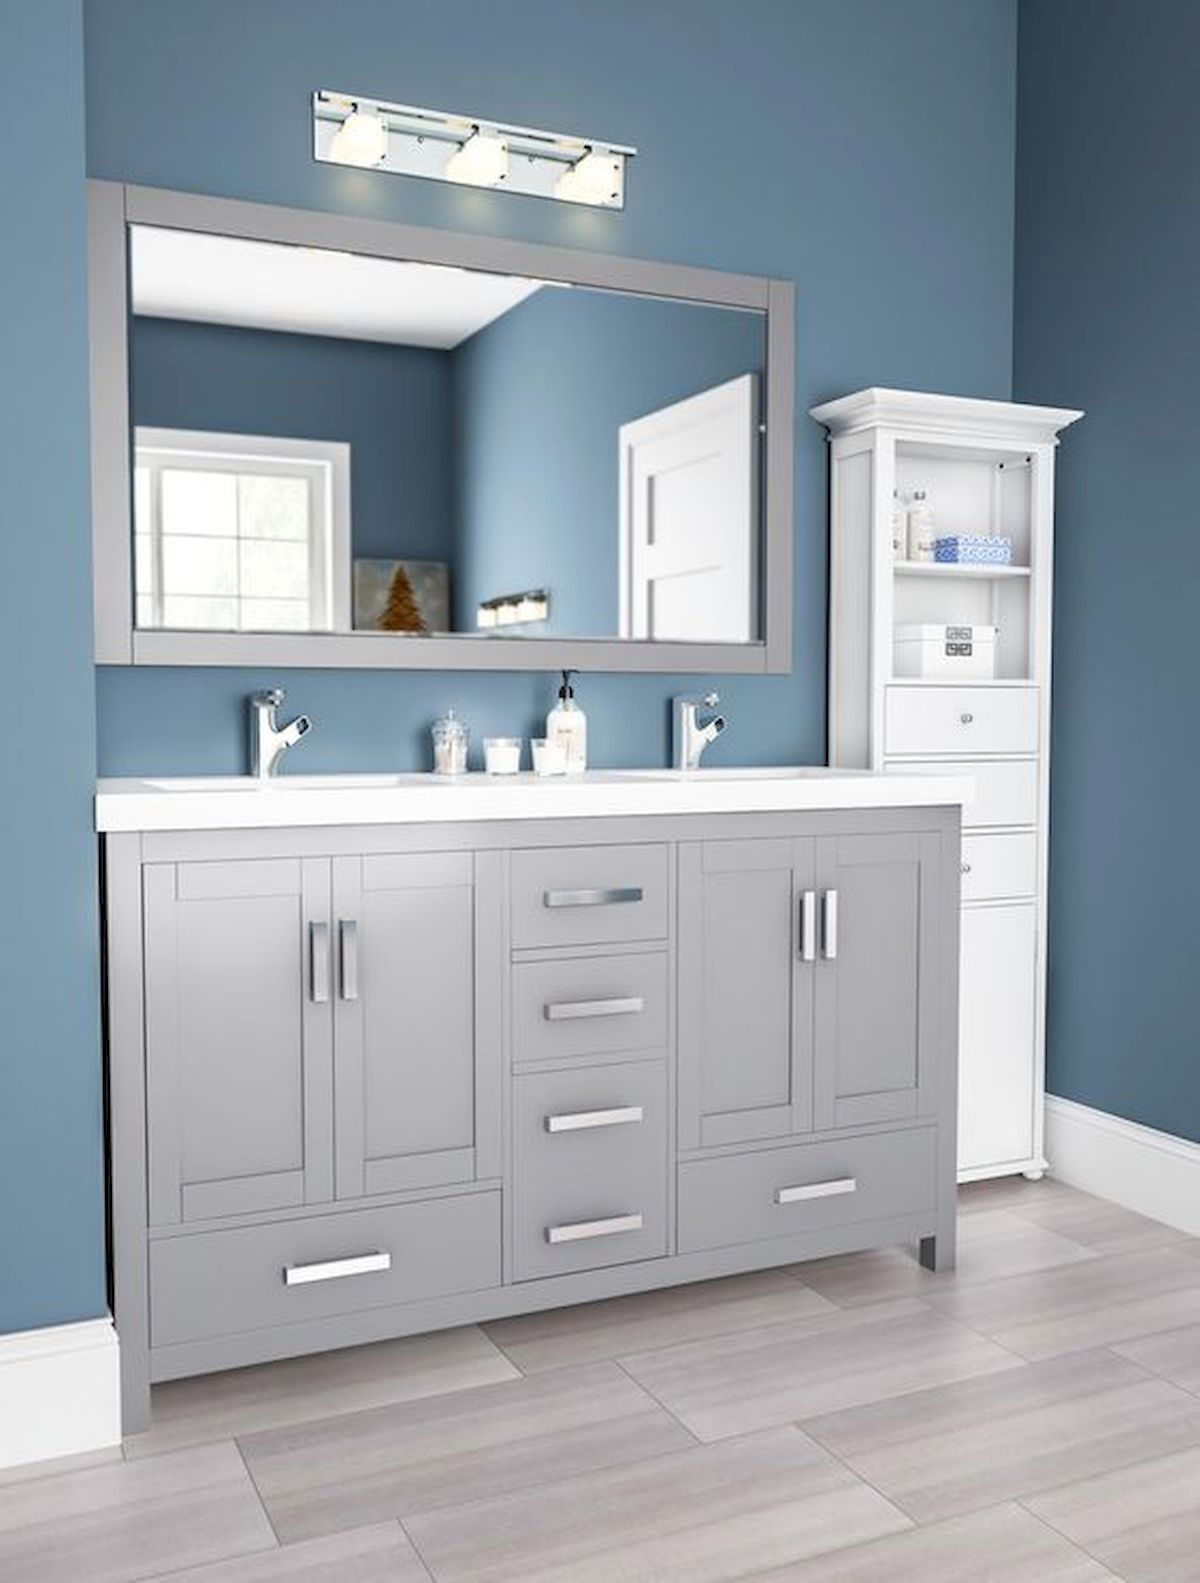 Pin On Bathroom Paint Colors